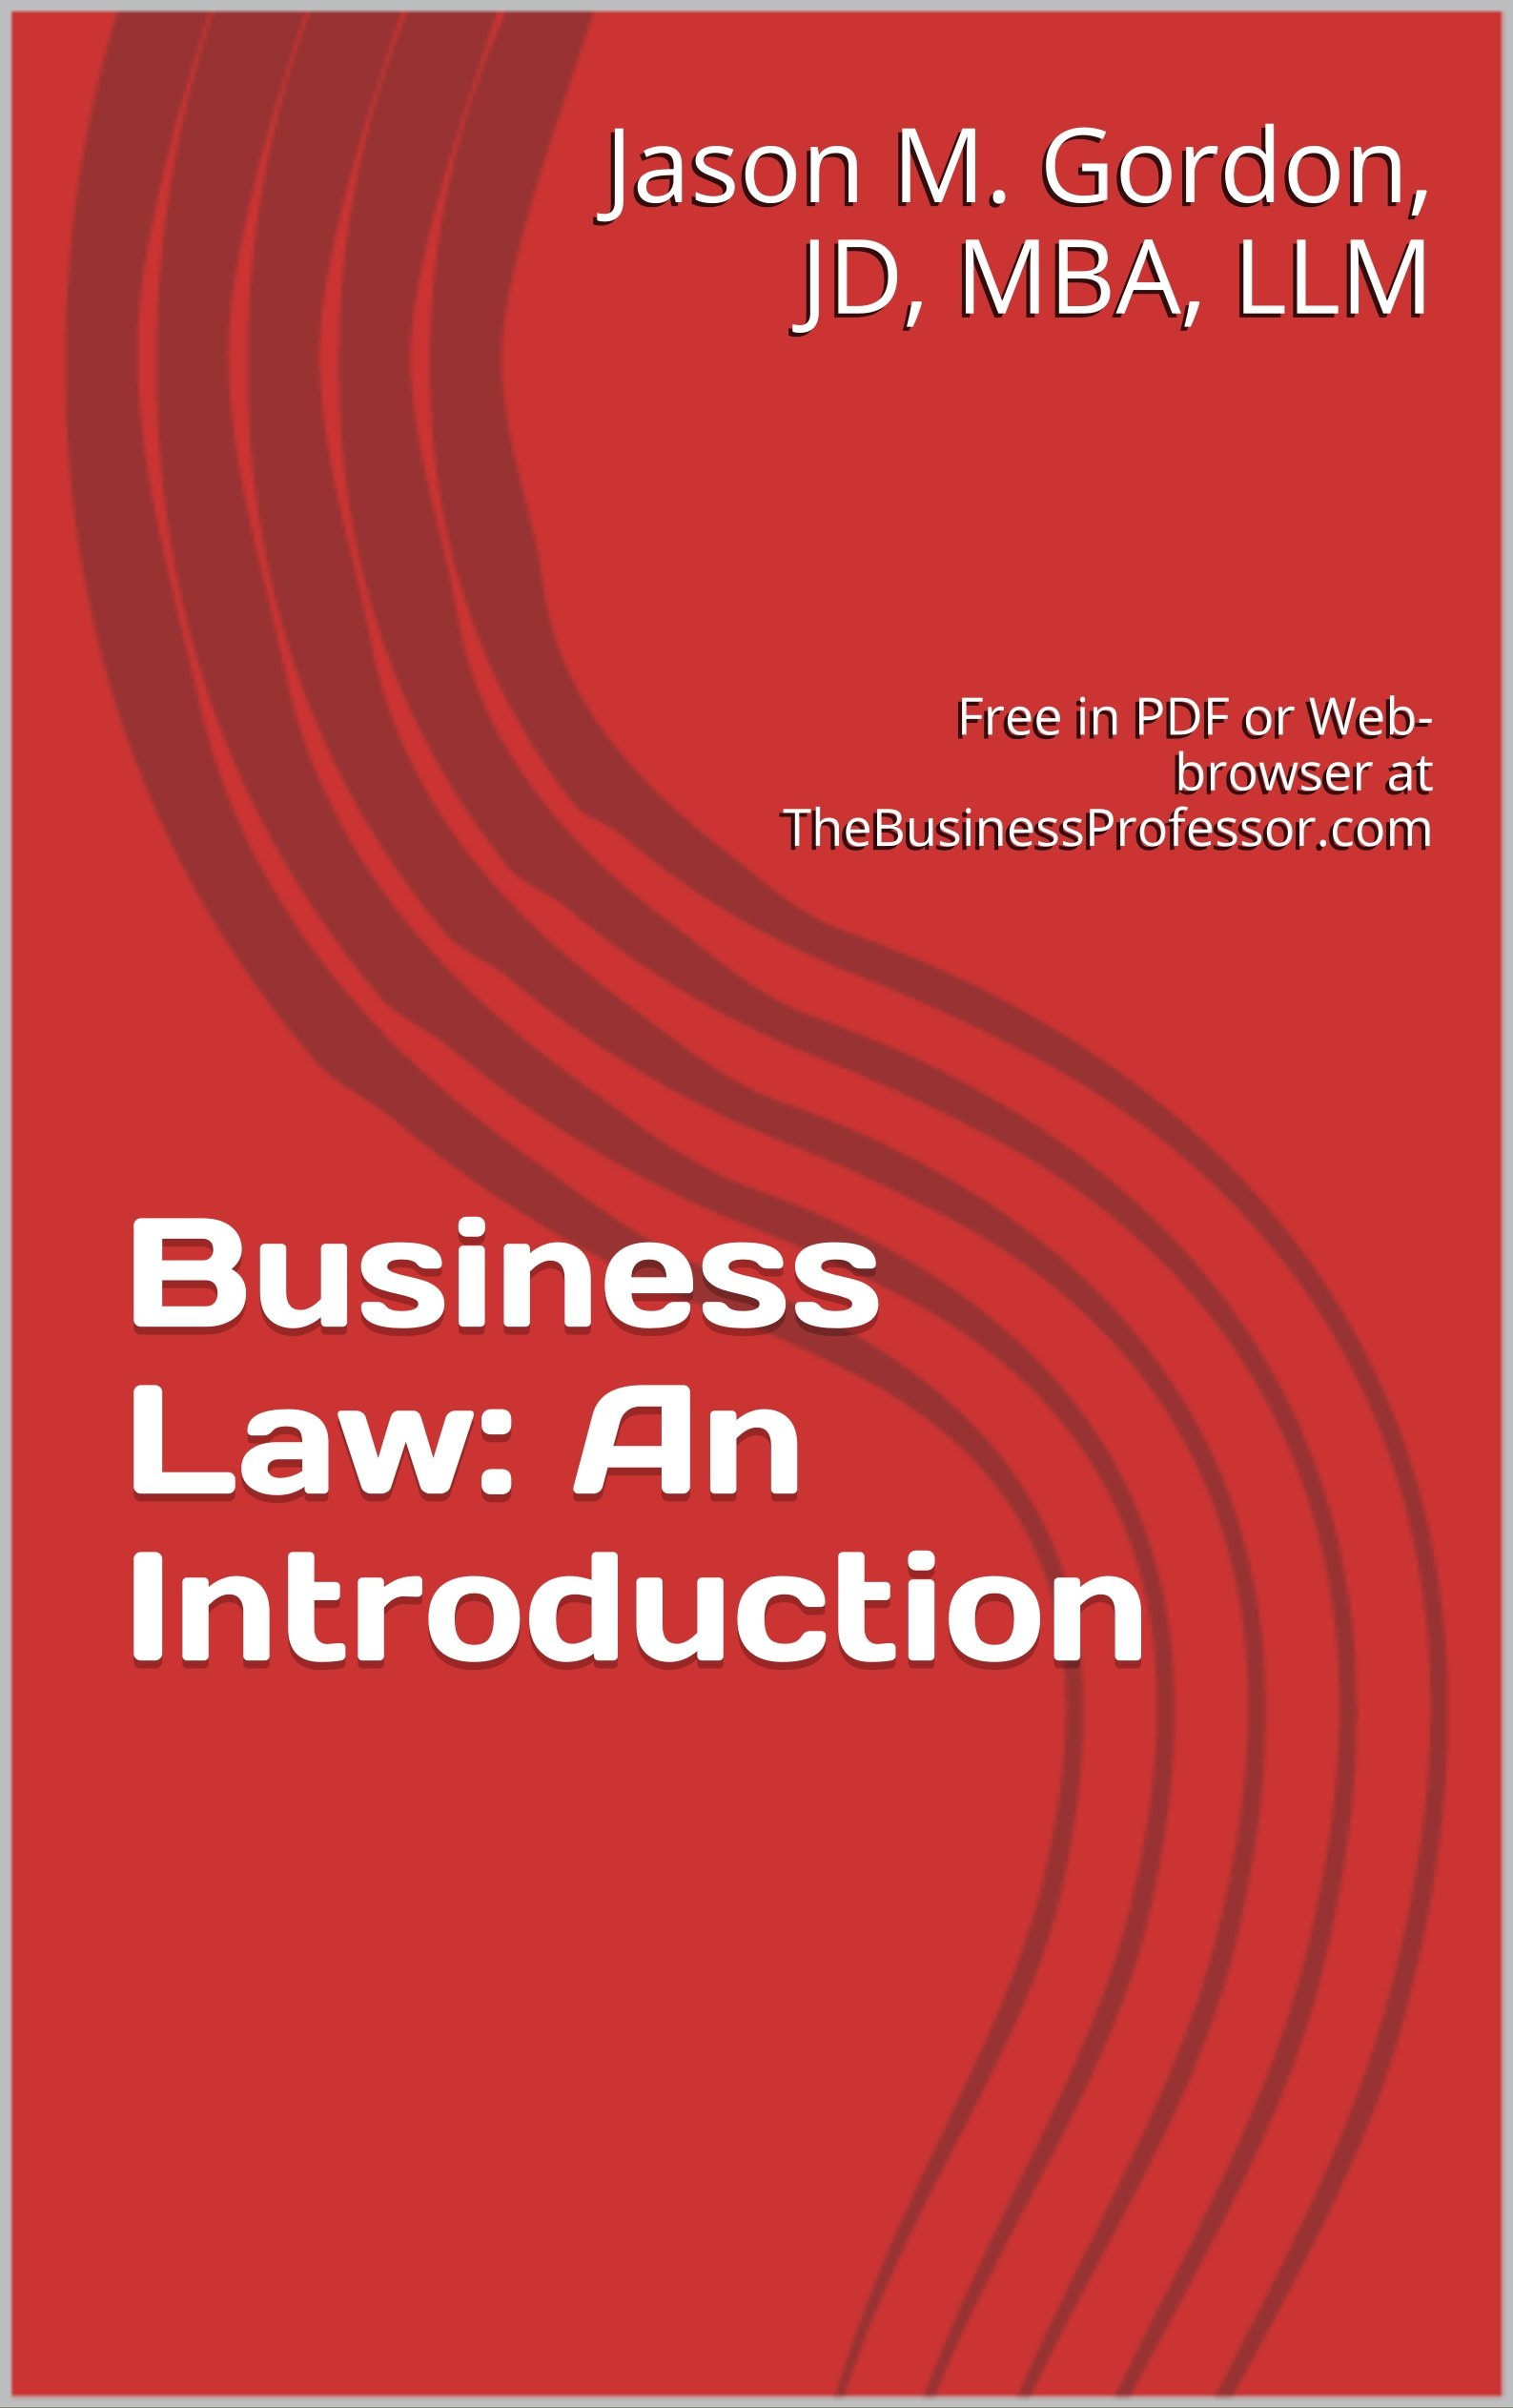 Business Law: An Introduction: Free in PDF or Web-browser at TheBusinessProfessor.com